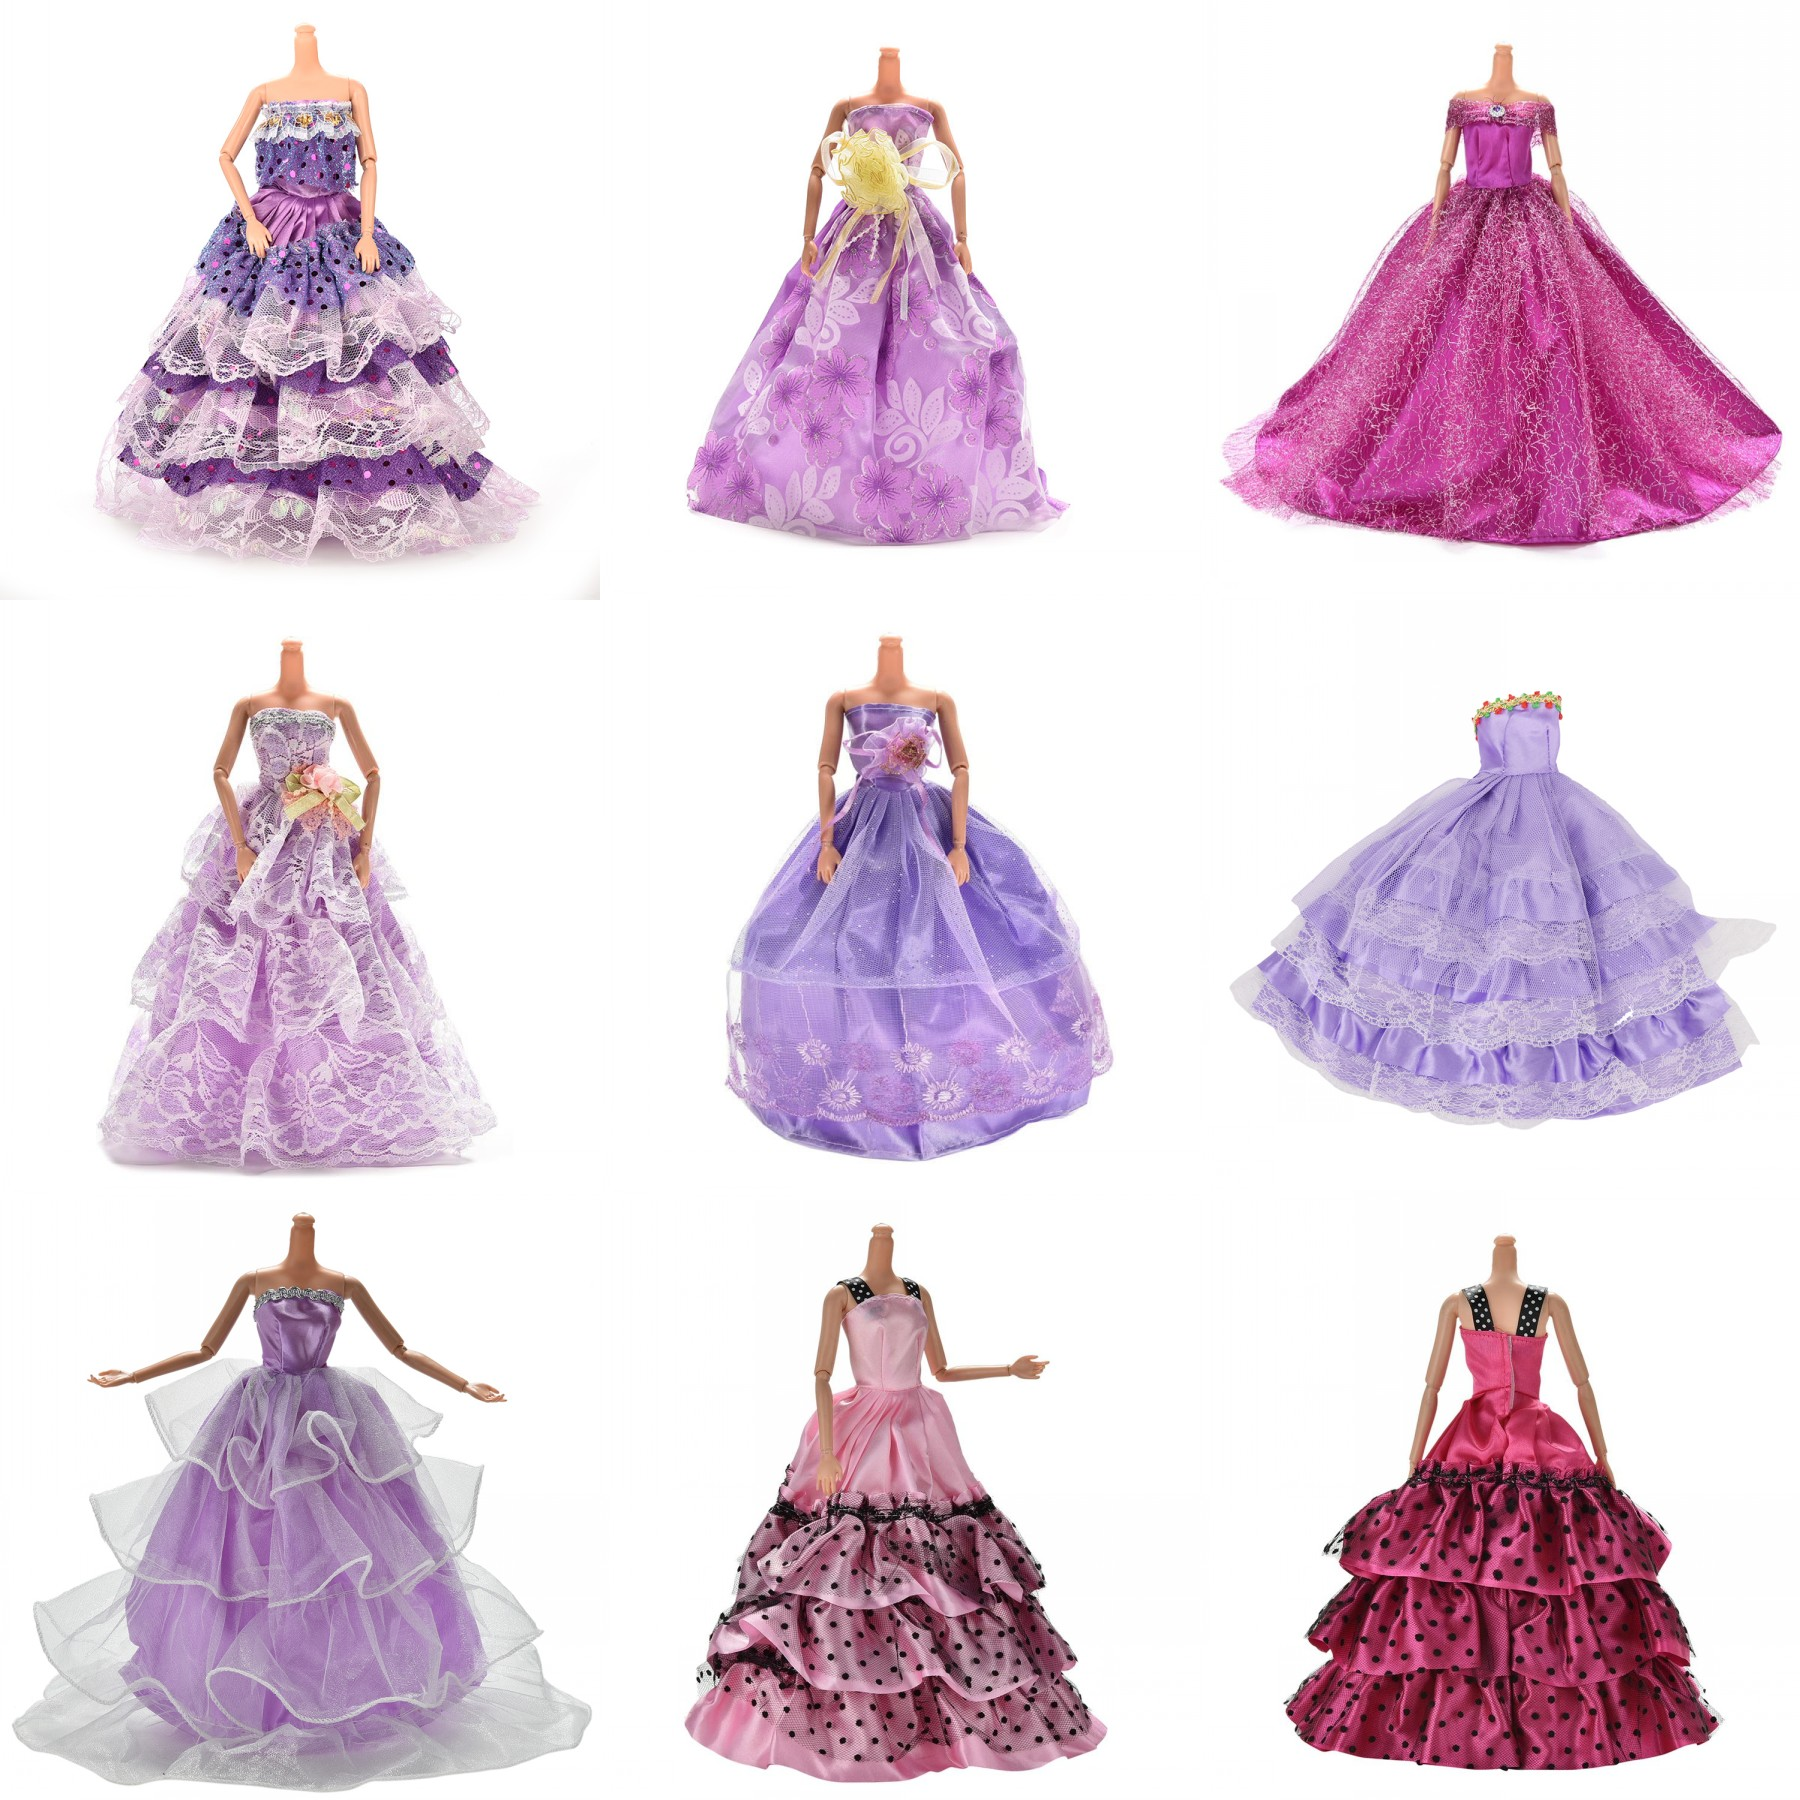 Purple Elegant Handmade Wedding princess Dress Doll Floral Doll Dress  Clothes Clothing Multi Layers Dolls Accessories 52b3a51fba3e